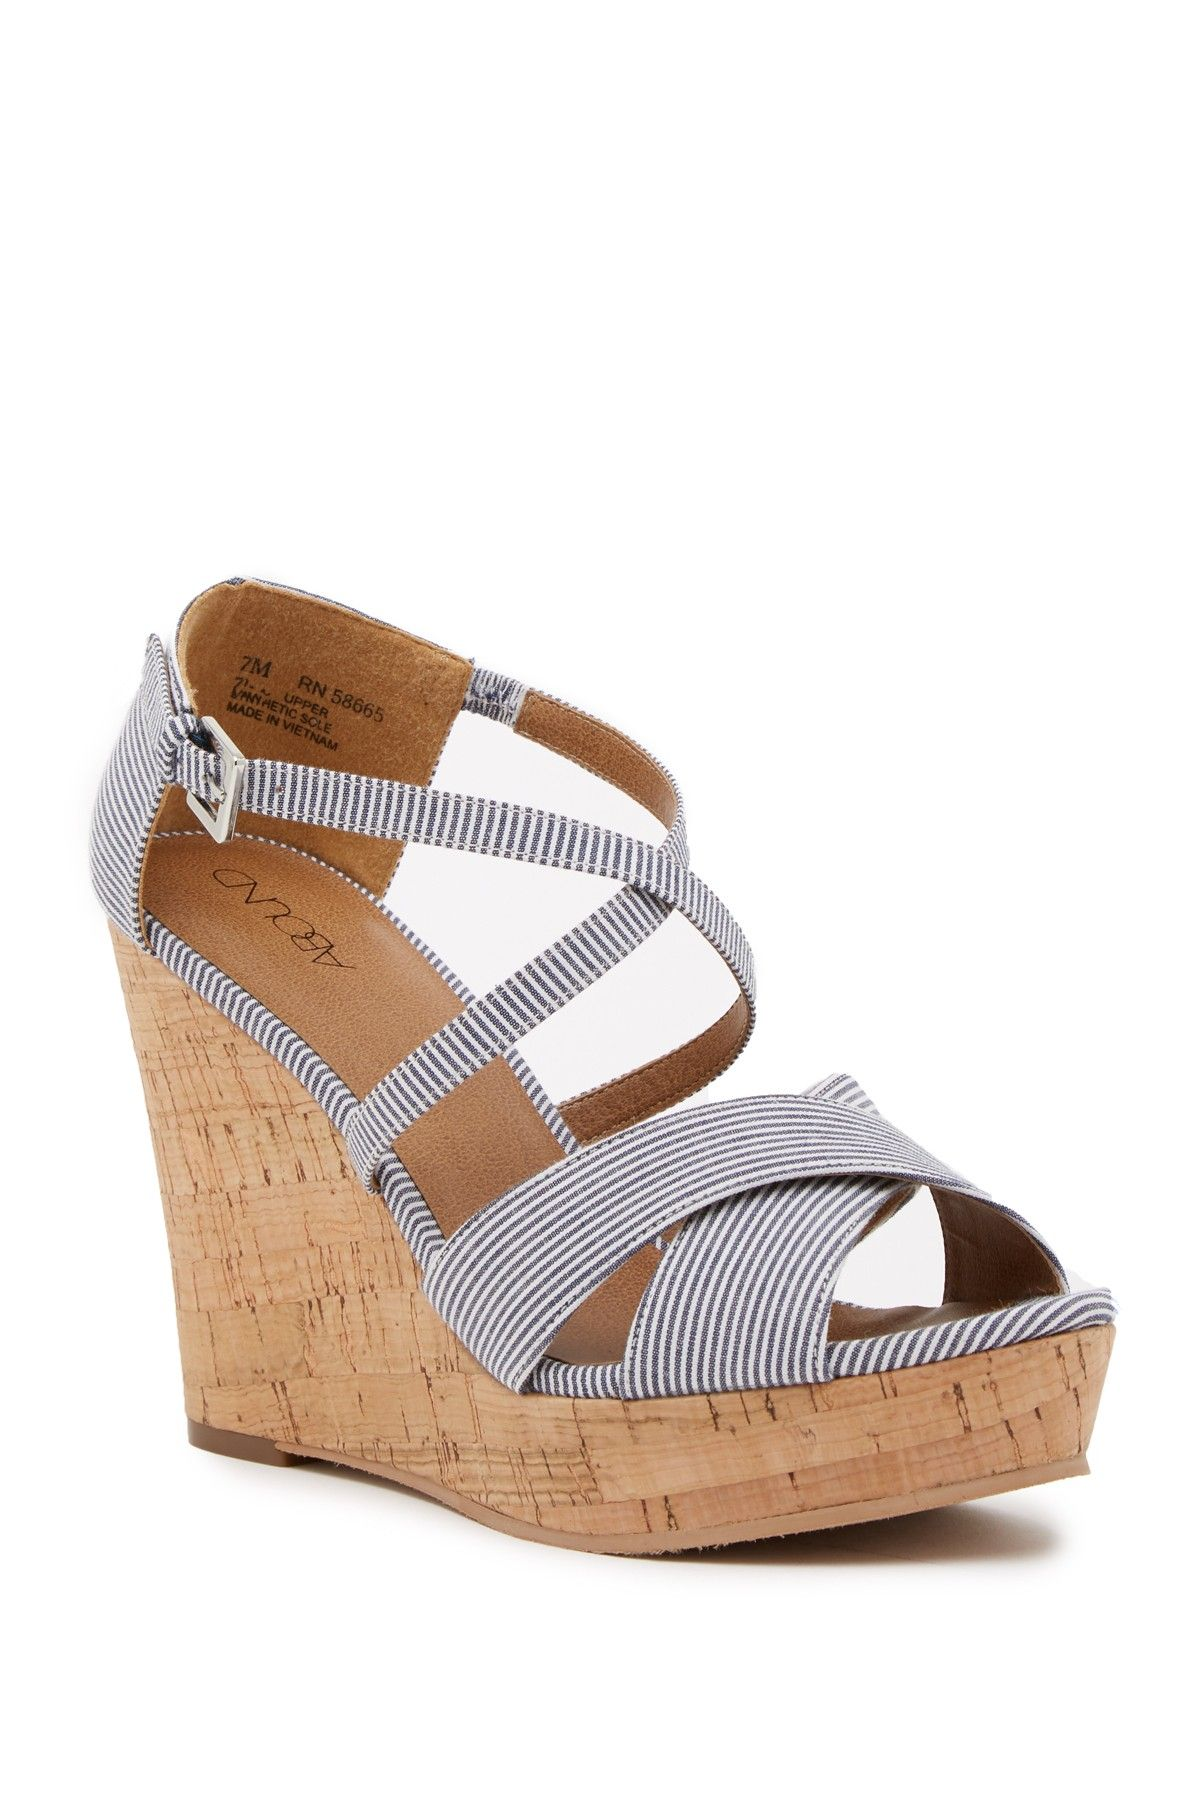 9d0f16a48b Bria Platform Wedge Sandal by Abound on  nordstrom rack